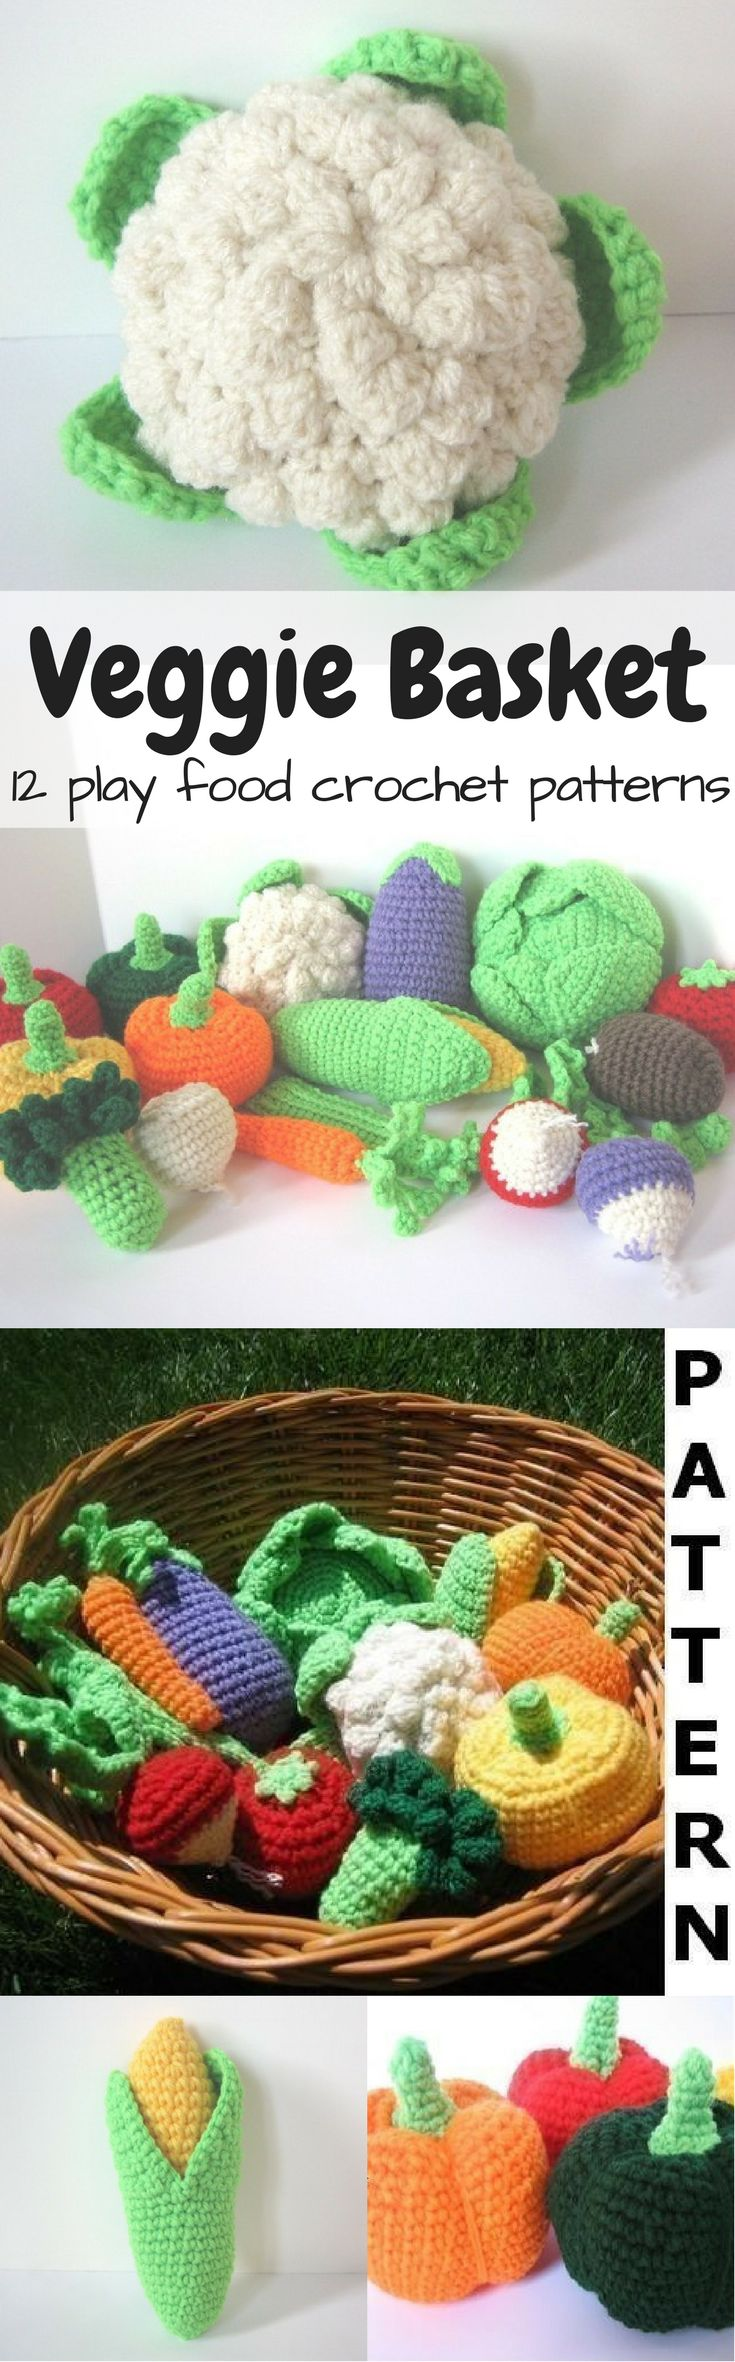 12 amazing vegetable crochet play food patterns to make this lovely basket full of veggies! What a fun idea for a child with a toy kitchen! I love the cauliflower! So great! Makes me wish my kids were little again! #etsy #ad #pdfpattern #crochetpattern #pdfdownload #instantdownload